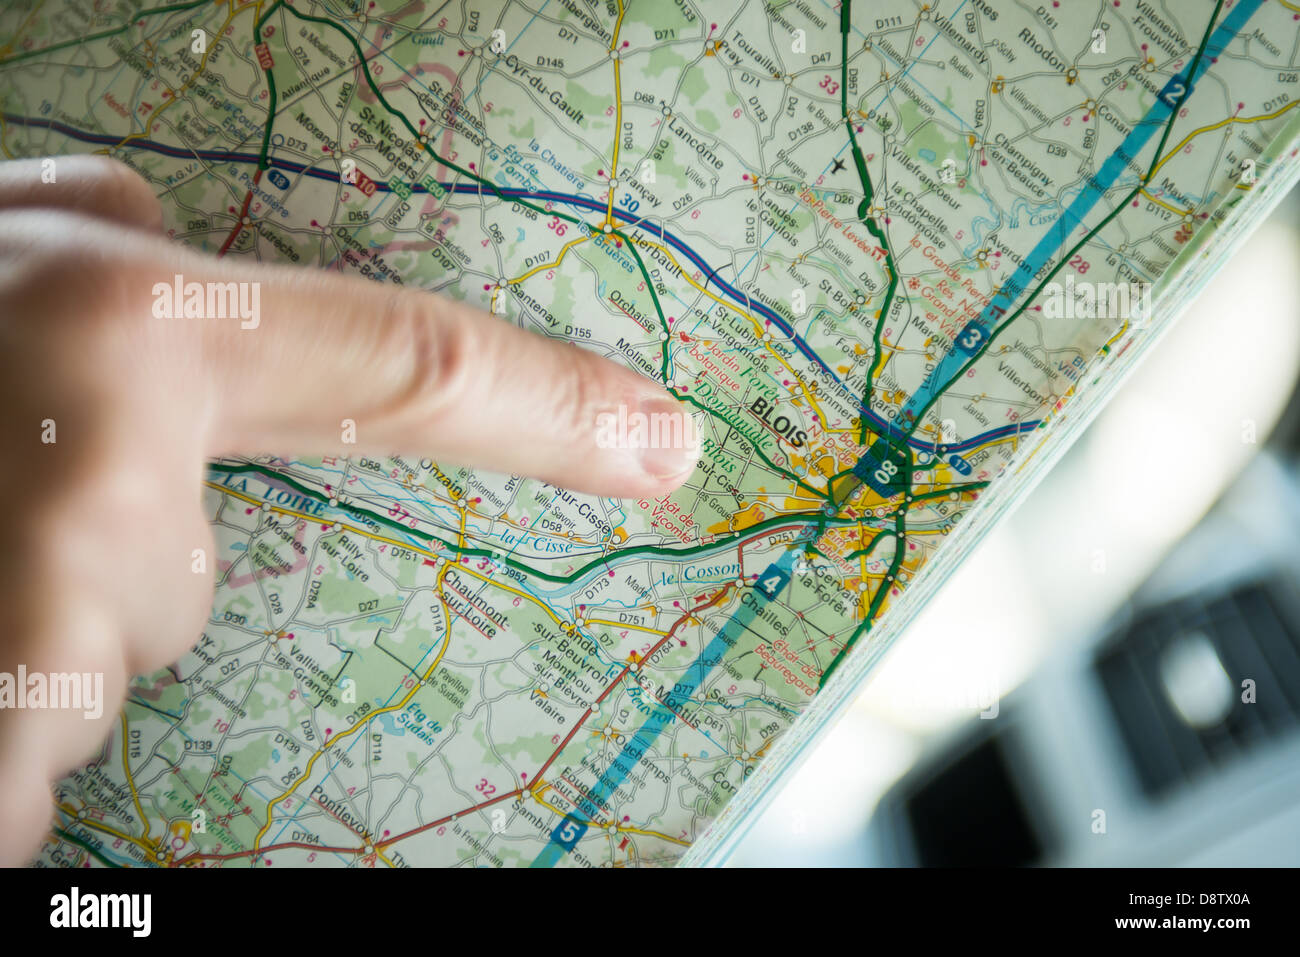 A finger pointing at Blois, France on a map - Stock Image